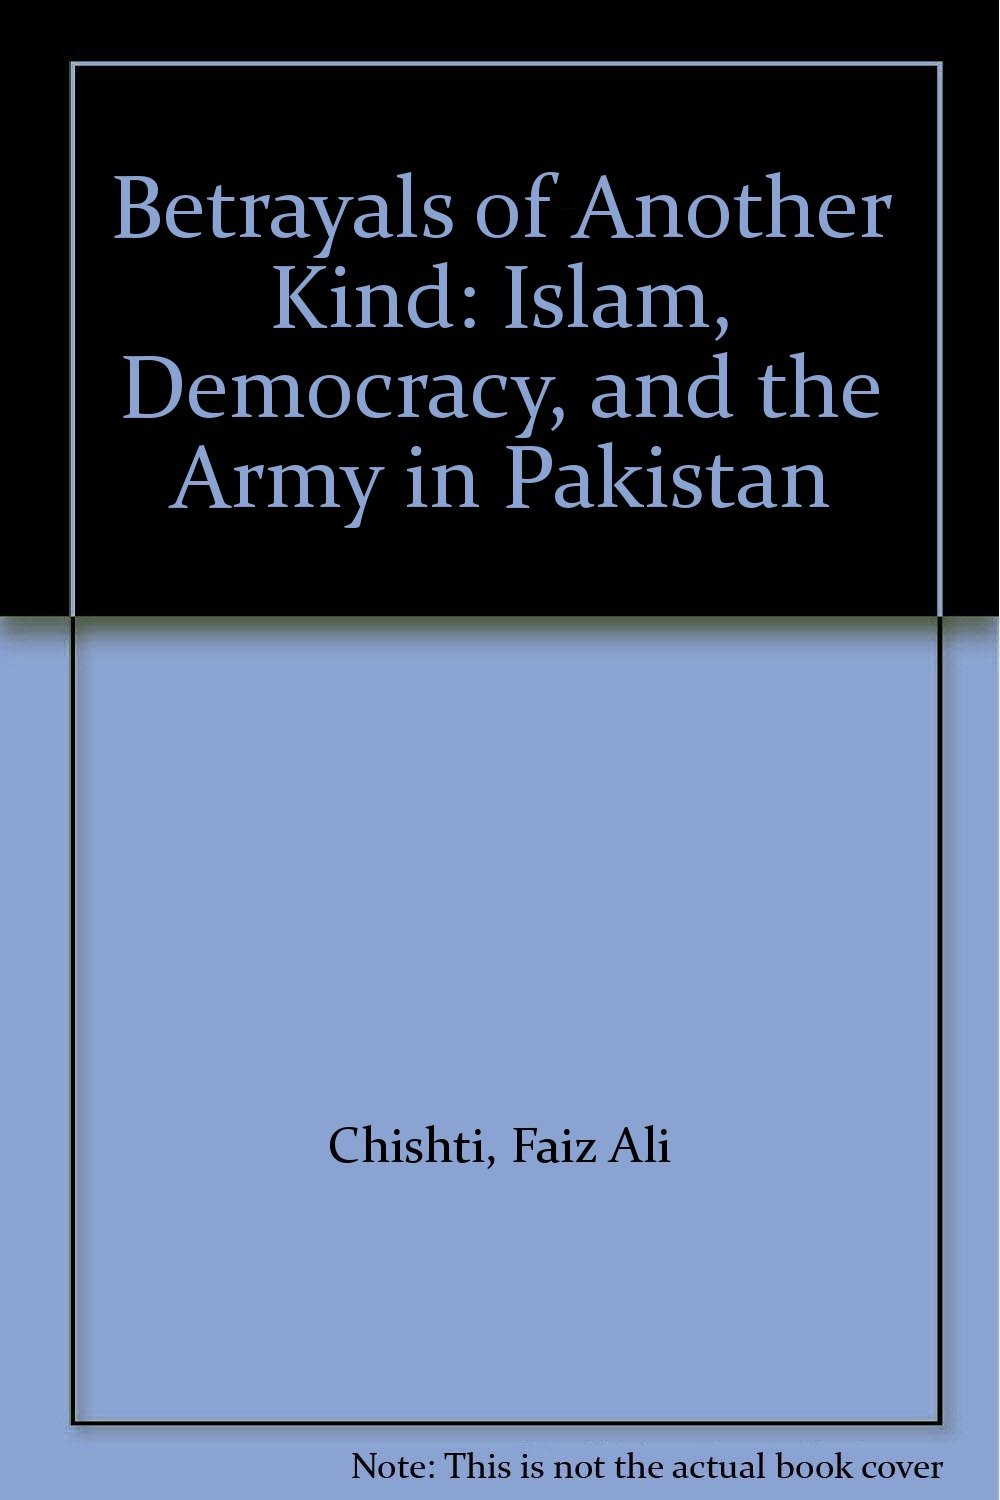 Betrayals of Another Kind: Islam, Democracy, and the Army in Pakistan